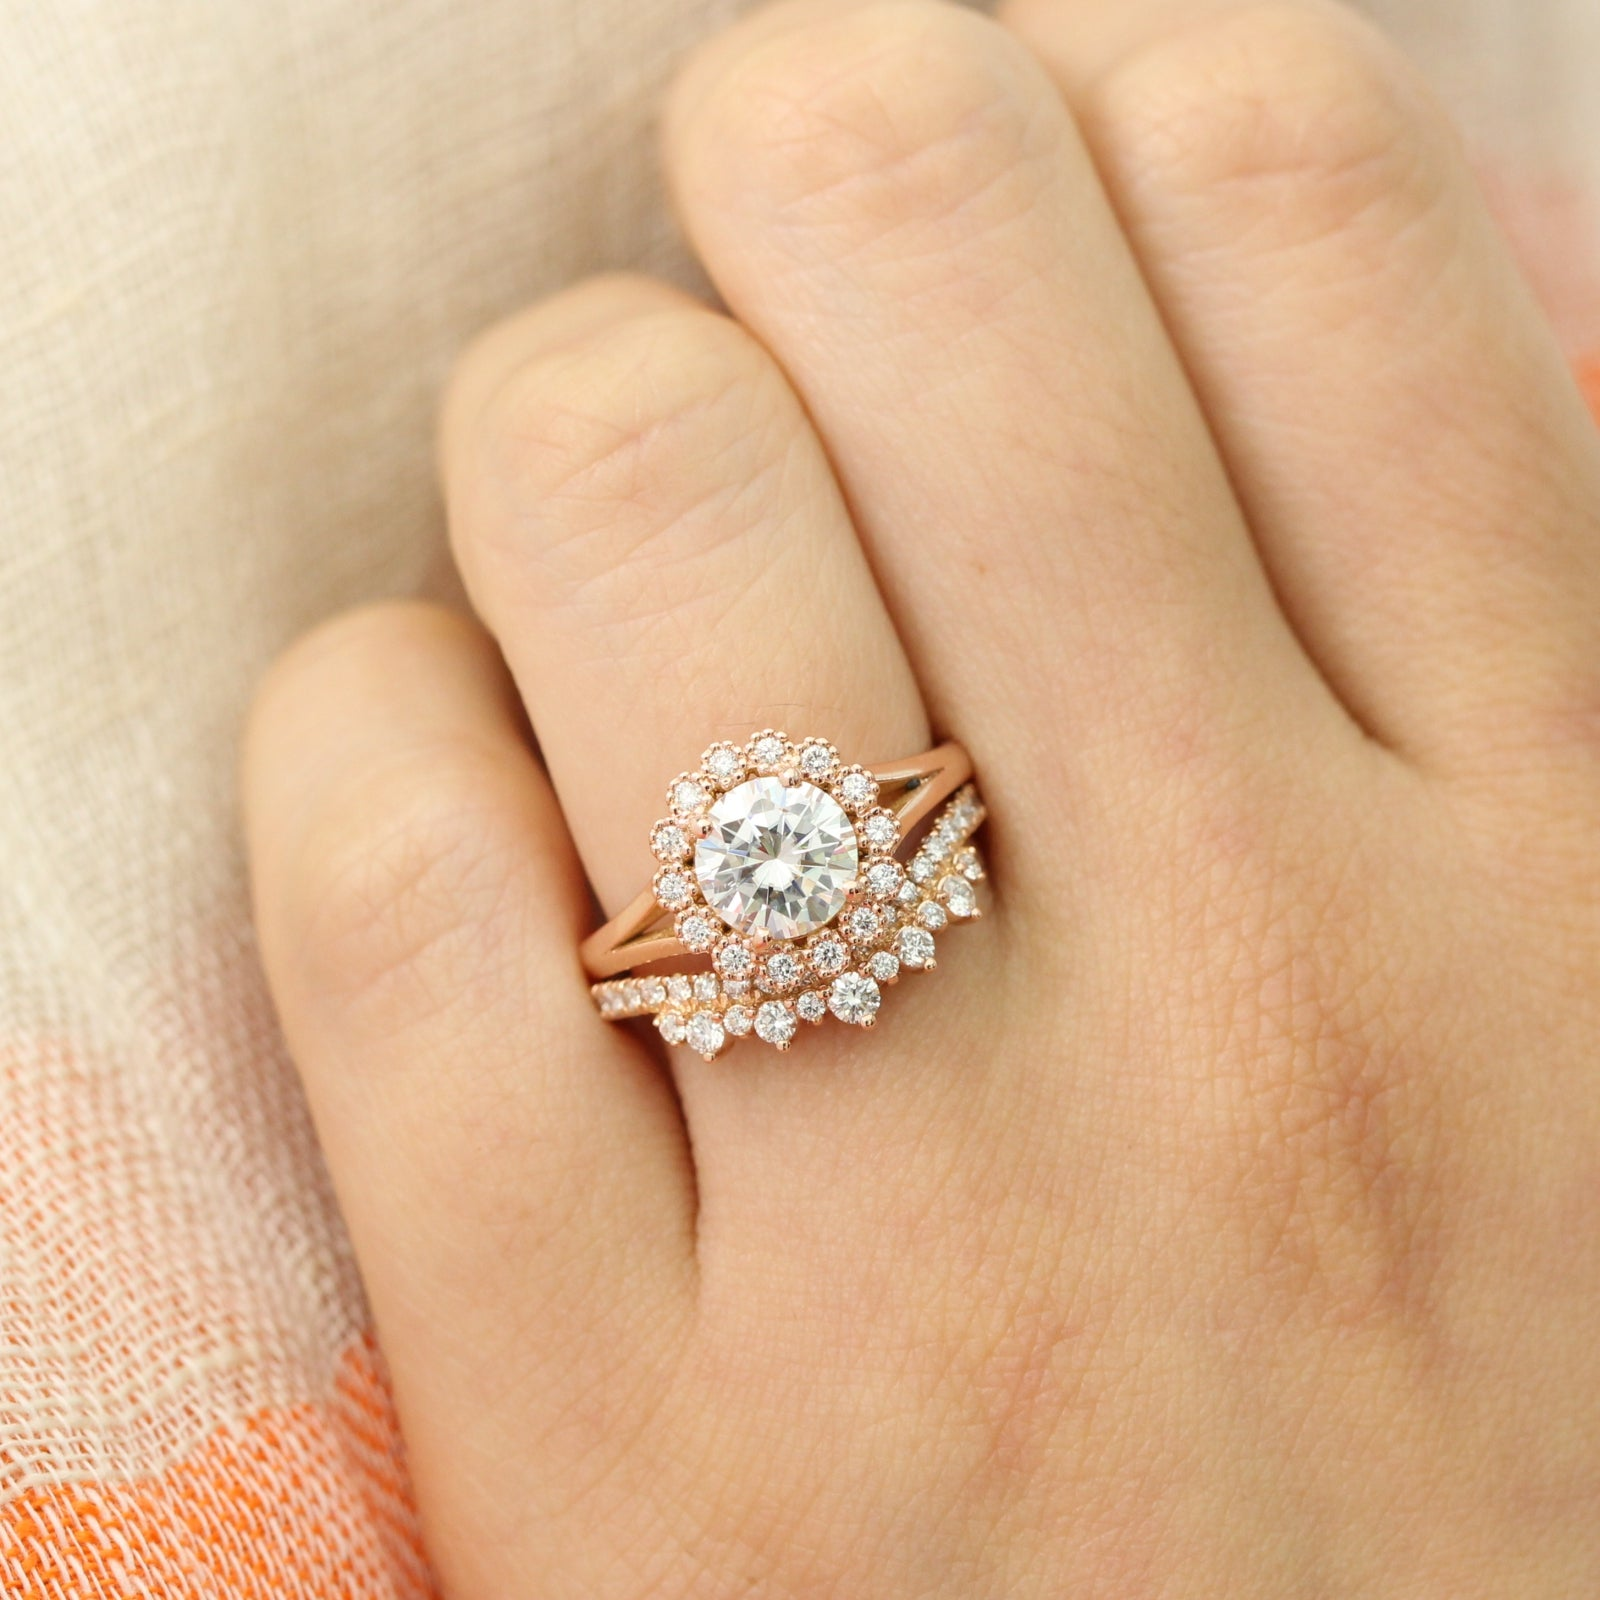 ring is rings ritani average a blog carat weight the what color engagement diamond size def of